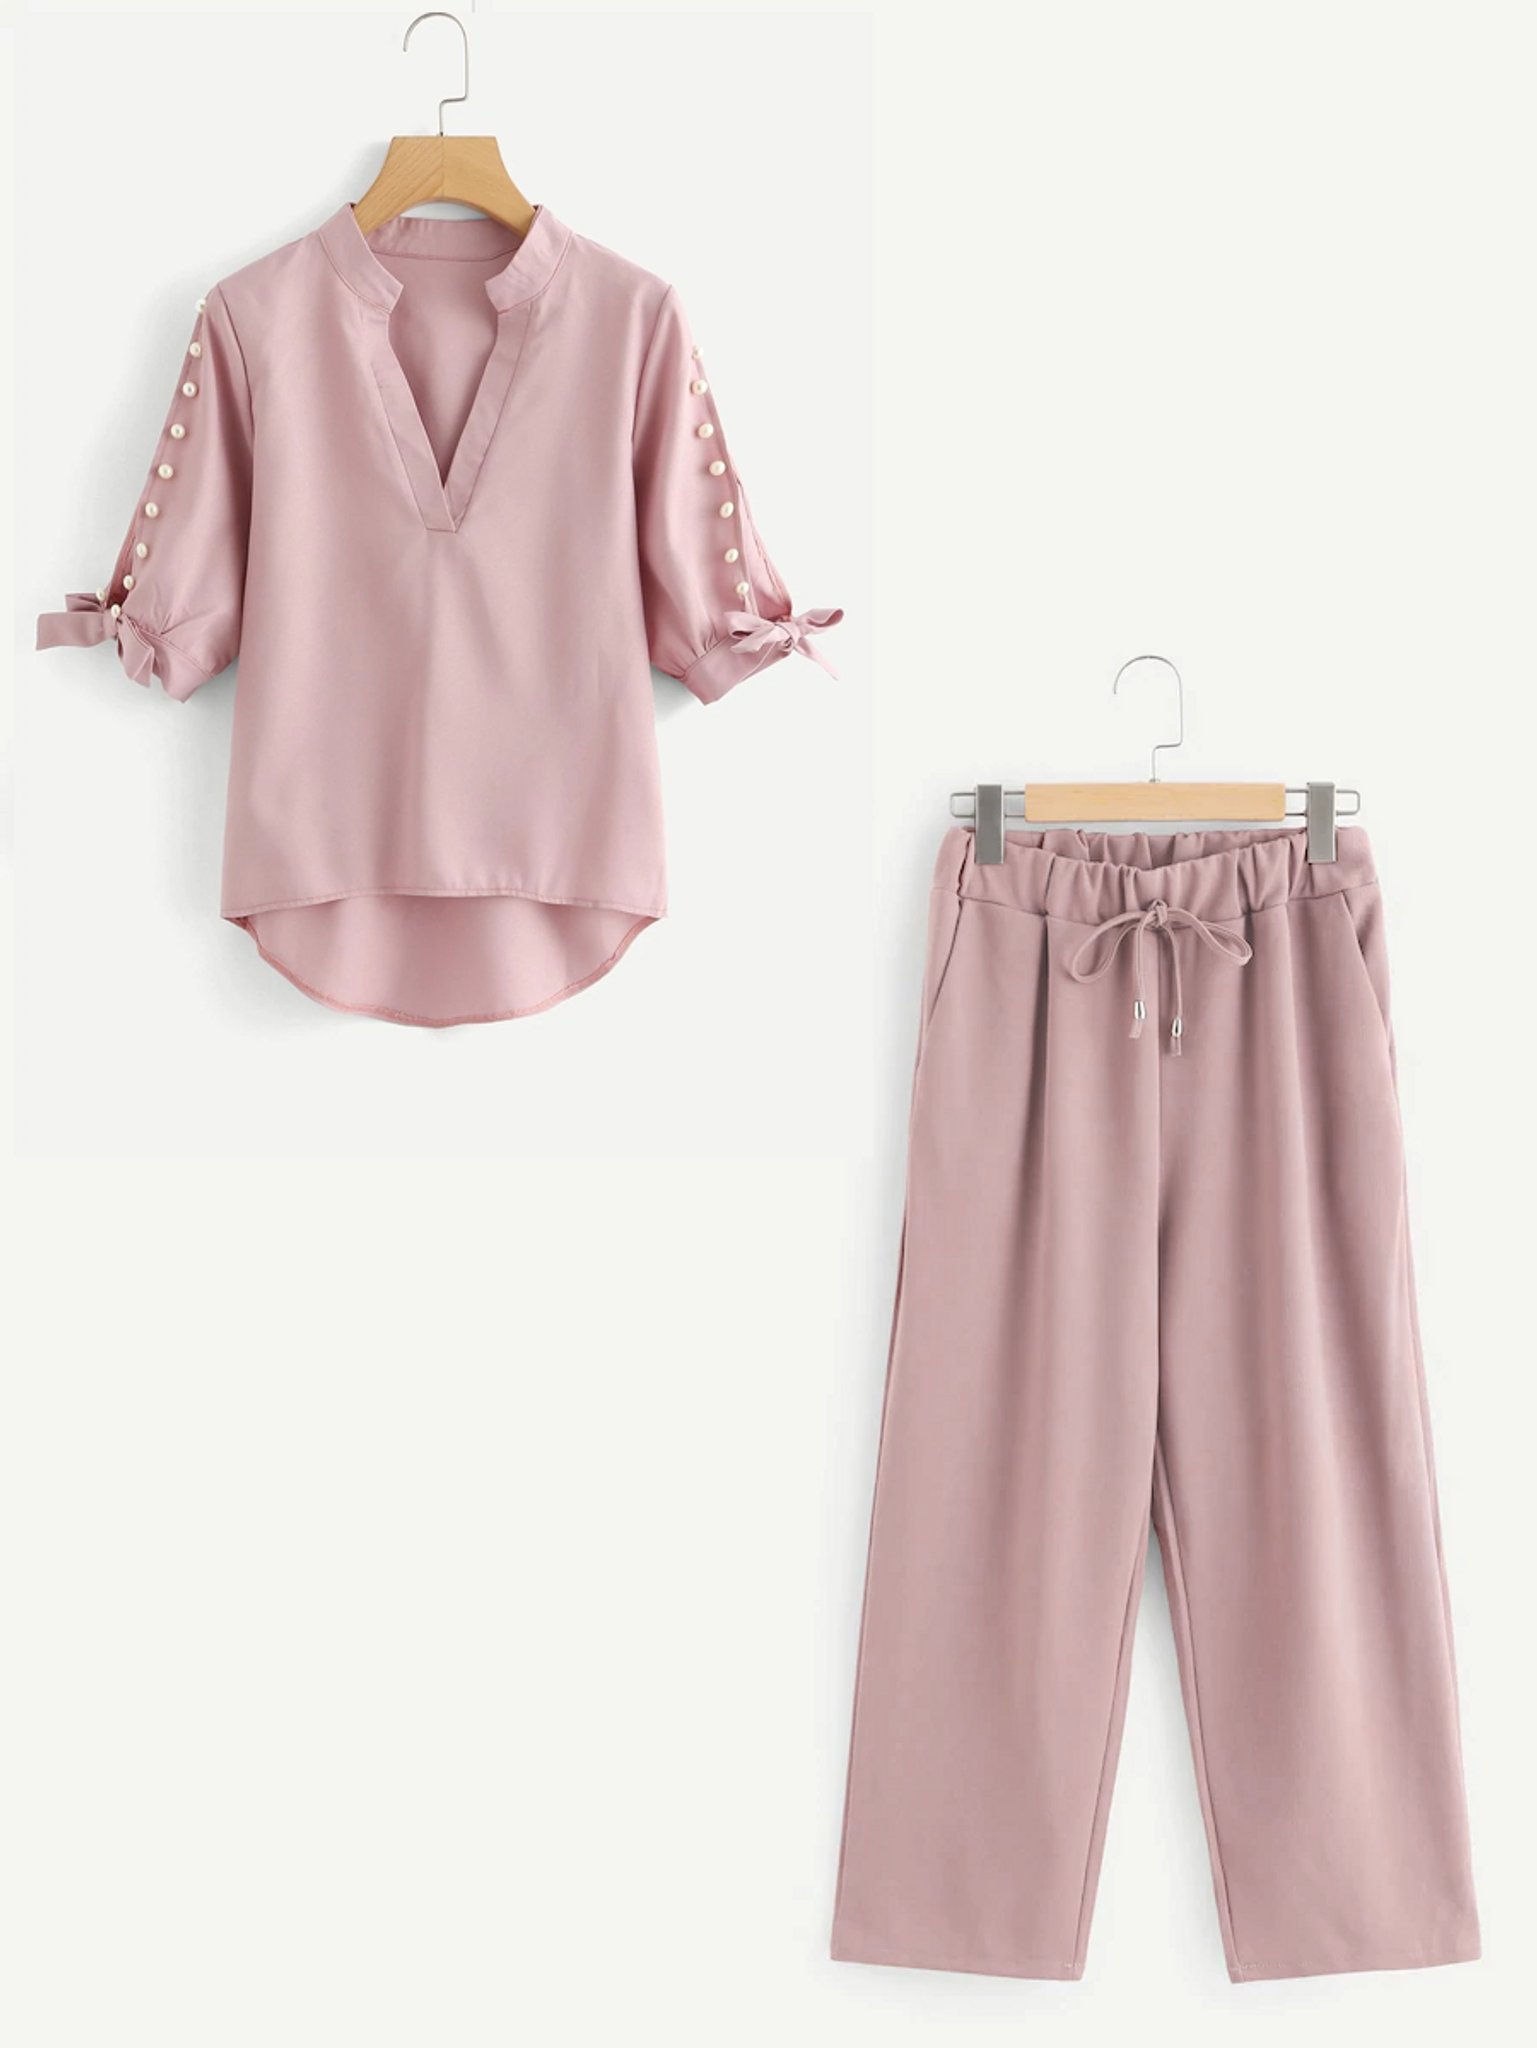 Fifth Avenue Beaded Sleeve Tie Top and Culotte Pants 2 Piece Set TPS33 - Pink